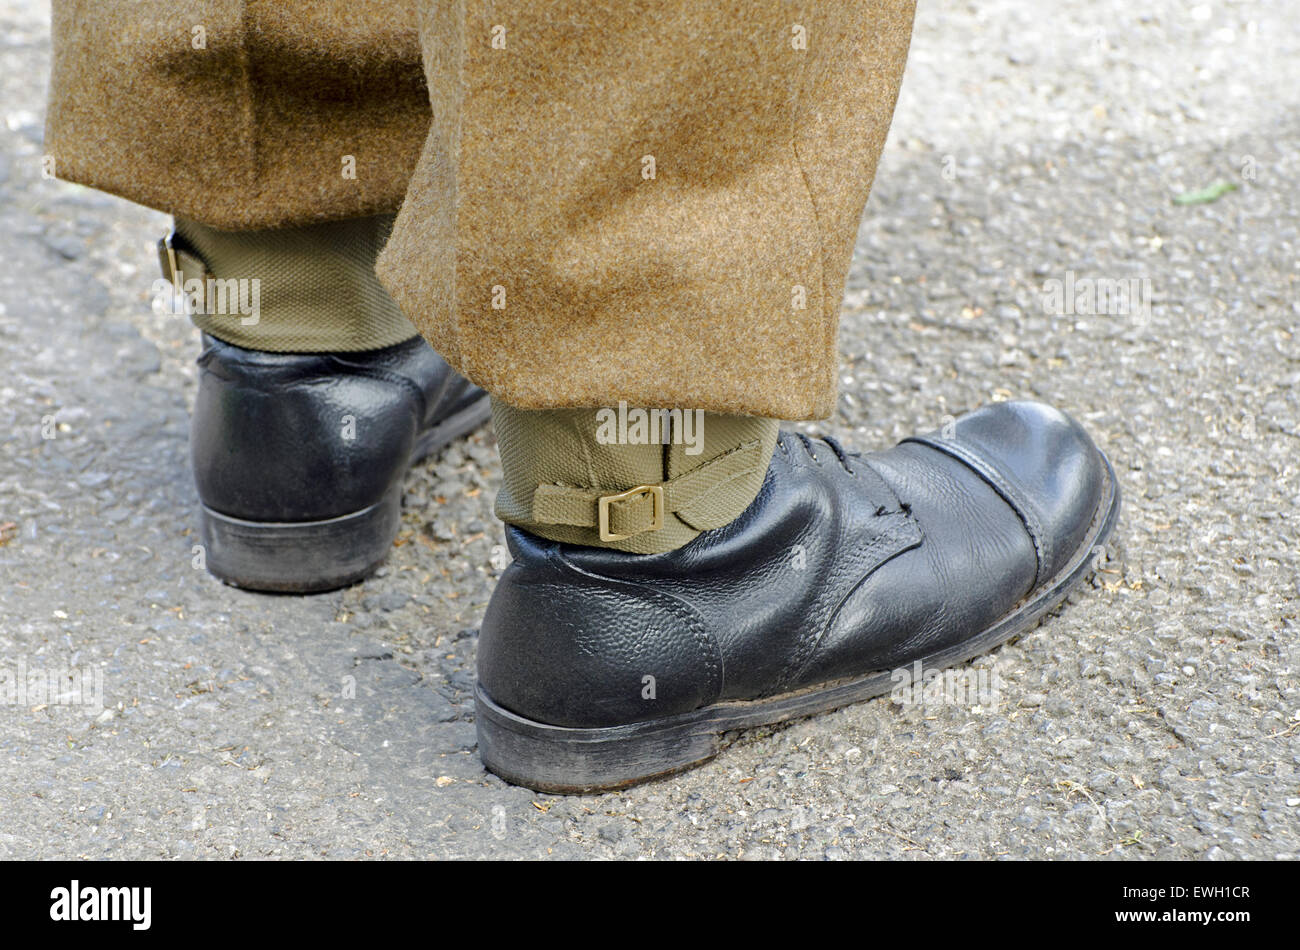 Person in WW2 British Army uniform showing standard issue army boots and gaiters - Stock Image